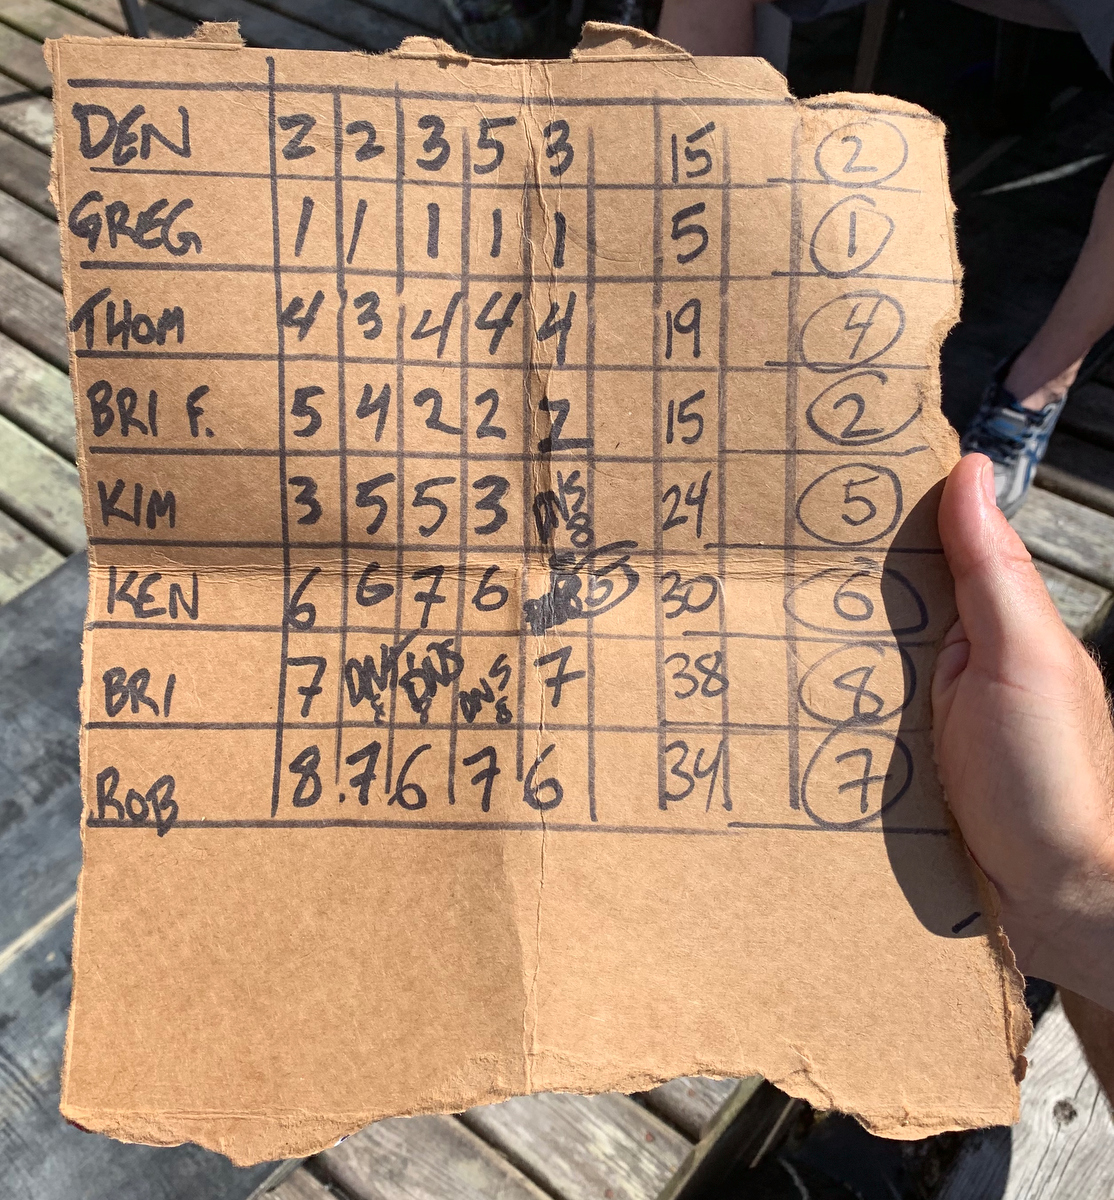 The scores from the 2019 Poise Cove Regatta.